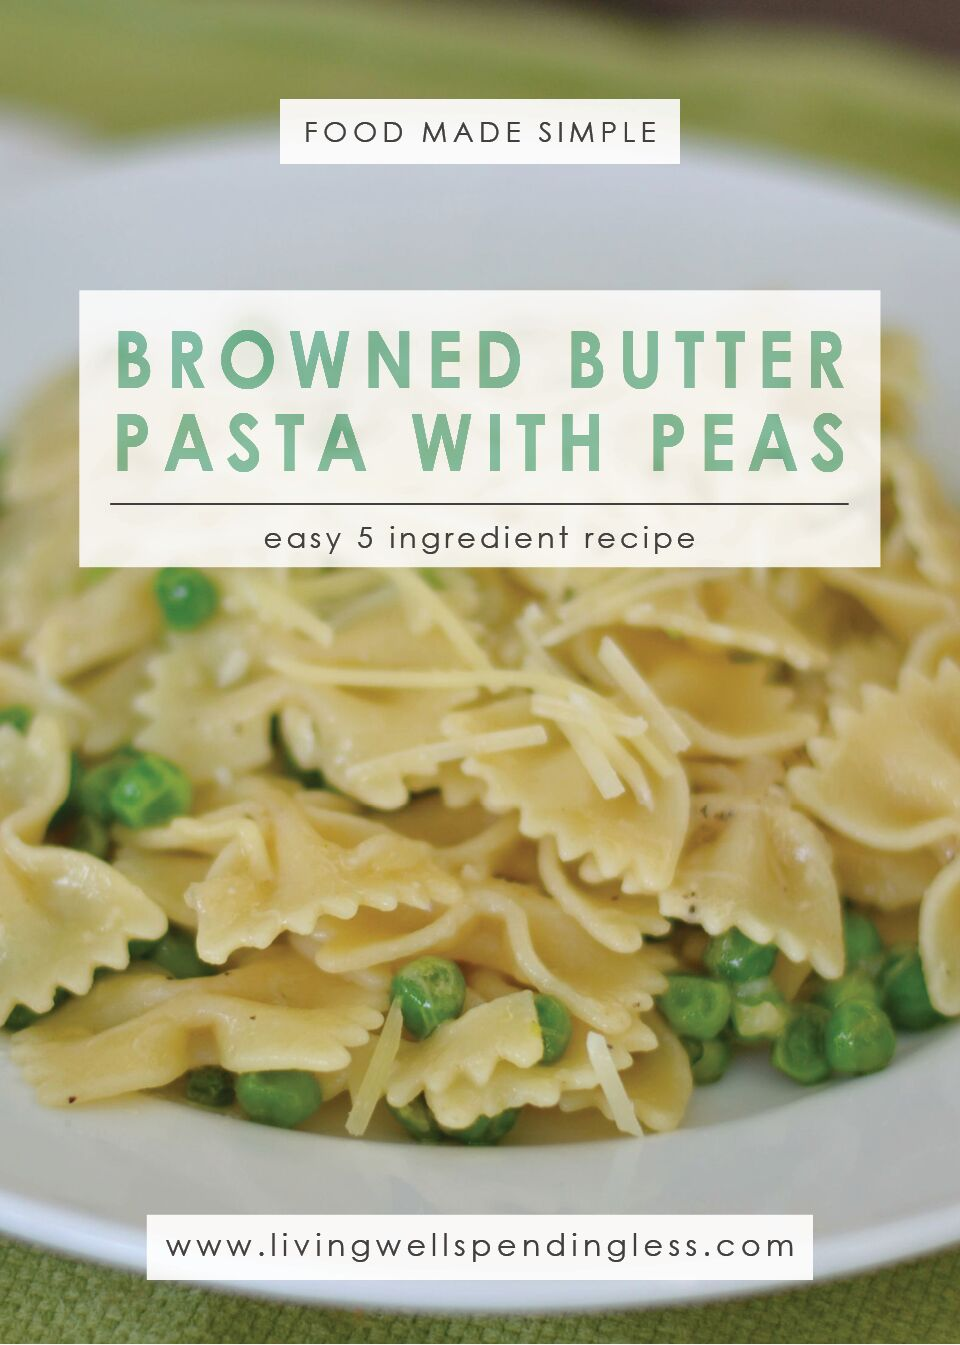 Browned Butter Pasta with Peas Recipe: An Easy 5 Ingredient Dinner